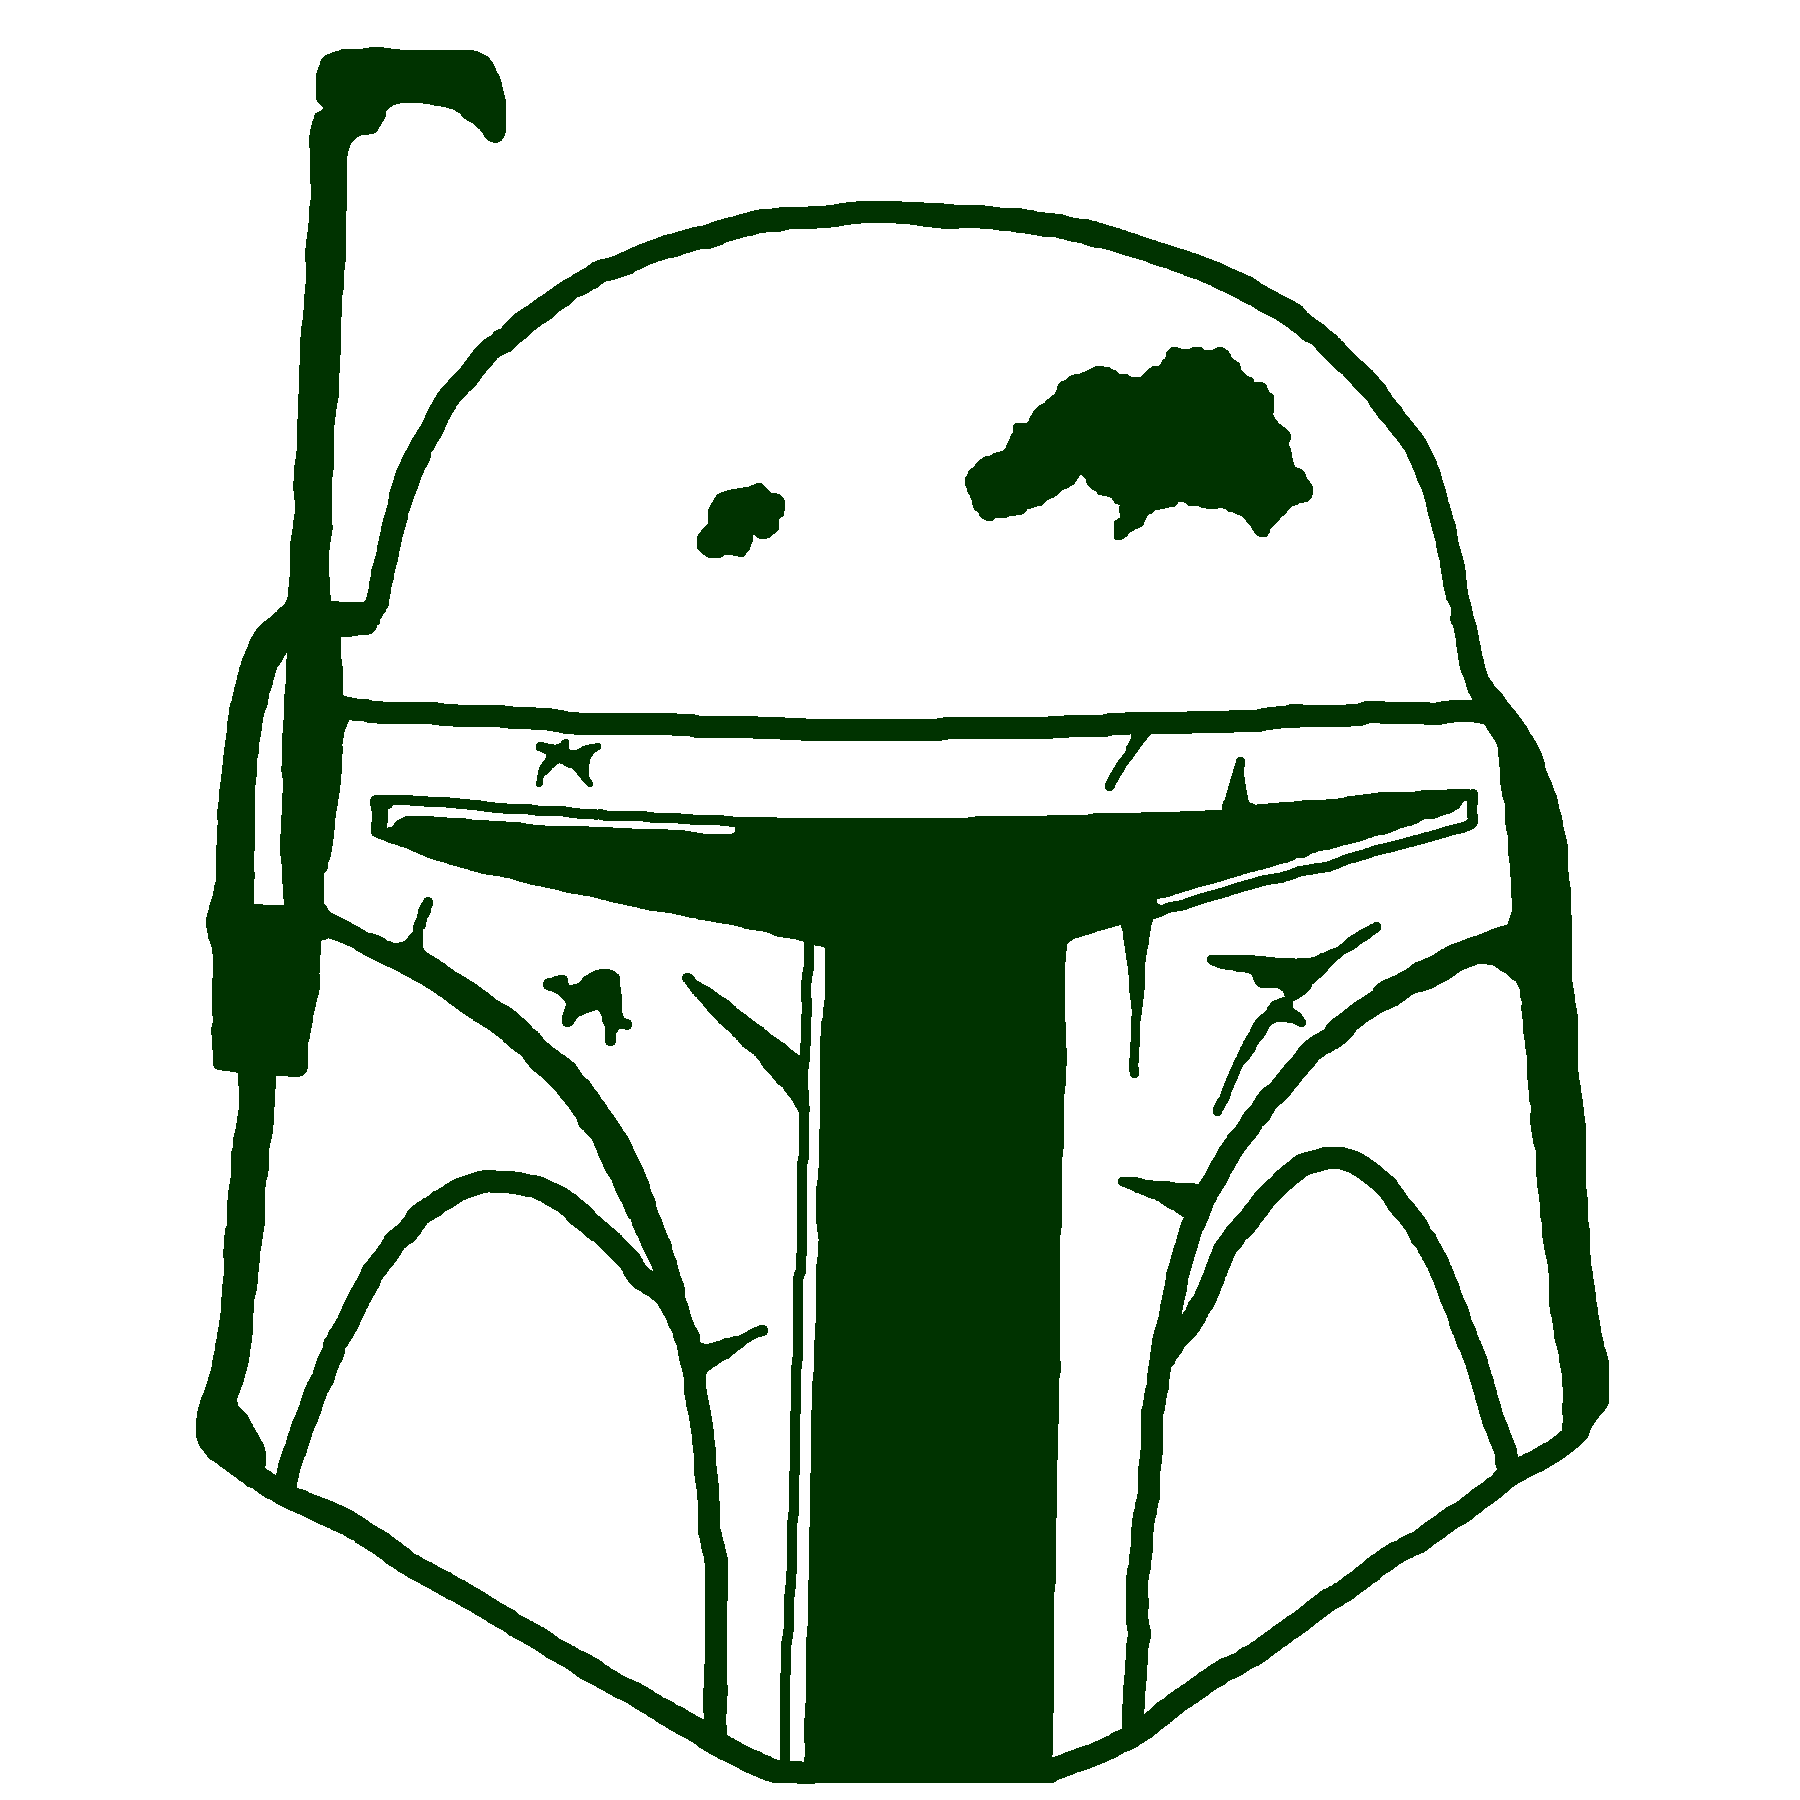 Star wars clipart boba fett clip transparent Boba Fett Clipart at GetDrawings.com | Free for personal use Boba ... clip transparent